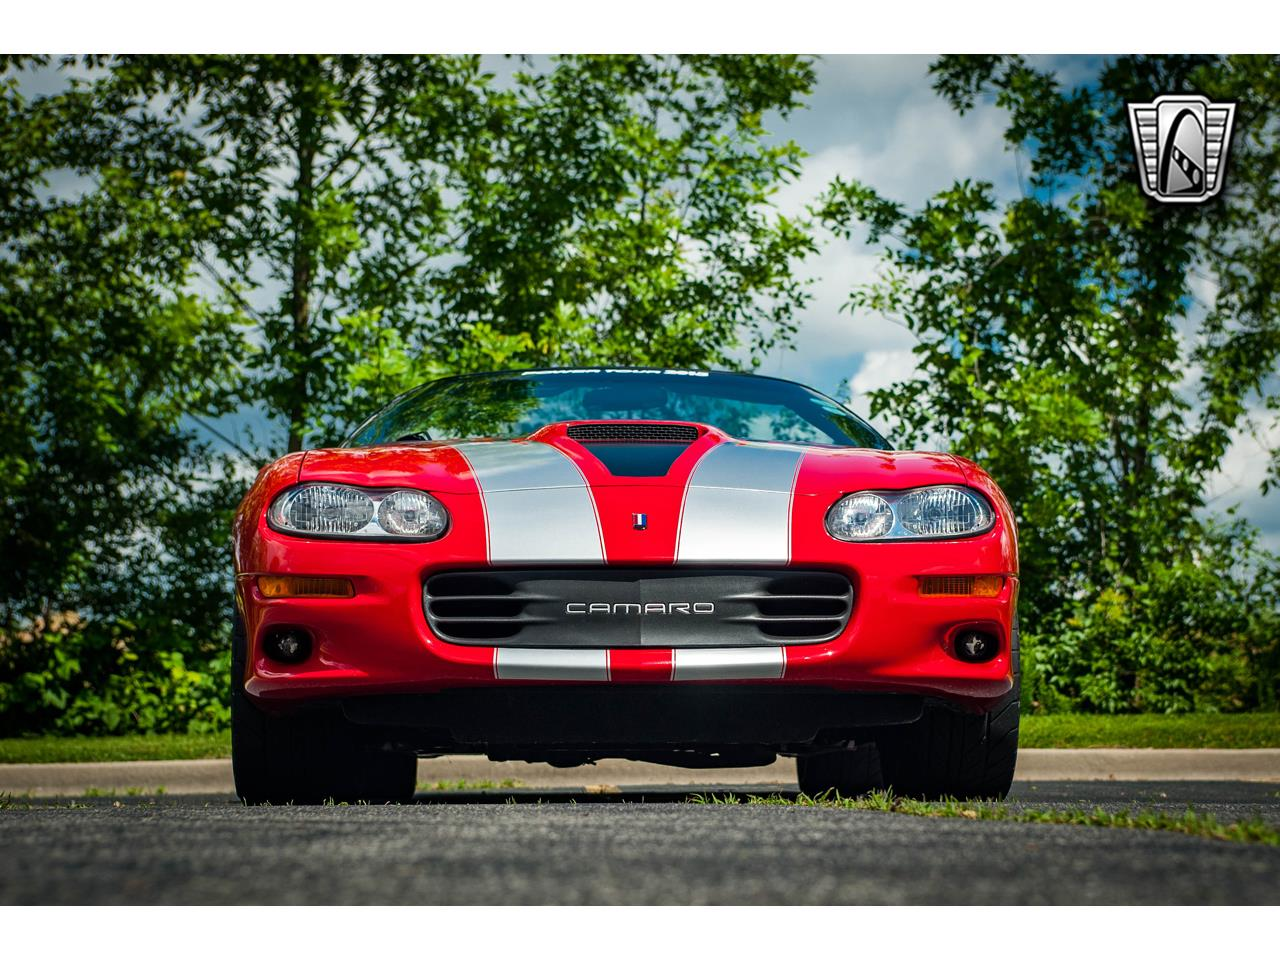 Large Picture of 2002 Chevrolet Camaro located in O'Fallon Illinois Offered by Gateway Classic Cars - St. Louis - QB9Z